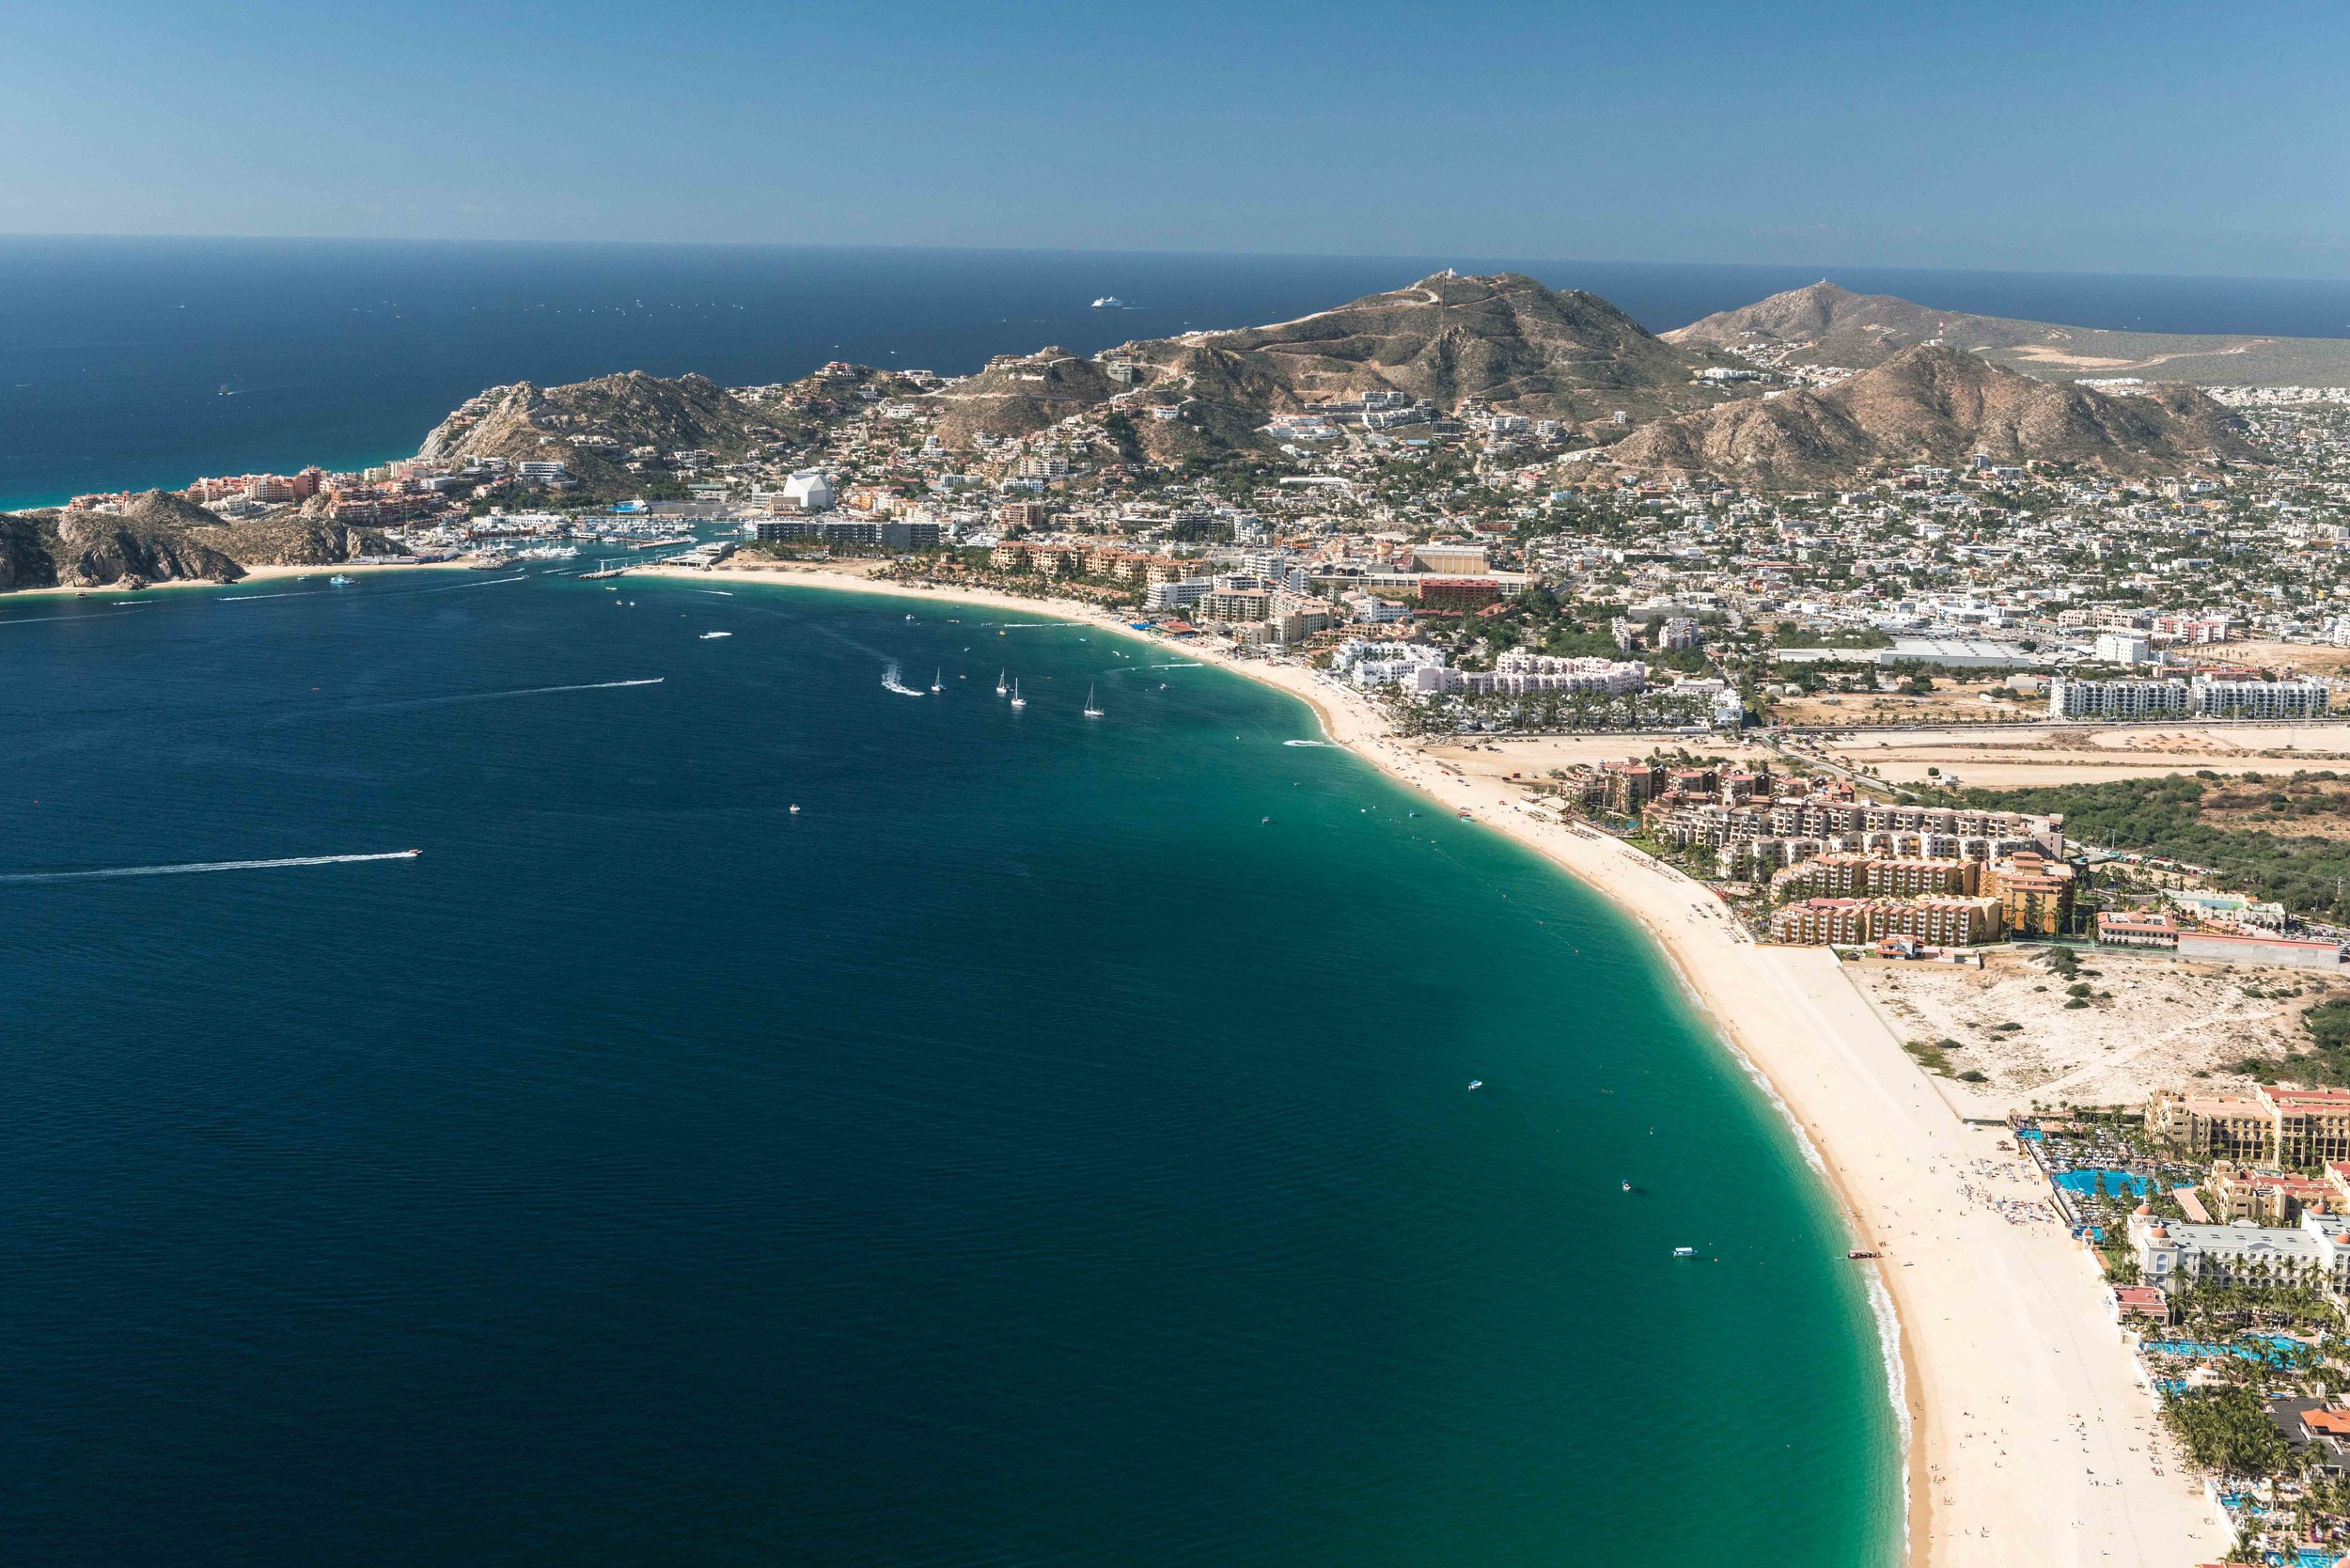 Sprawling beachfront development in Cabo San Lucas, Mexico, leaves little undisturbed habitat for nesting turtles. © Phillip Colla